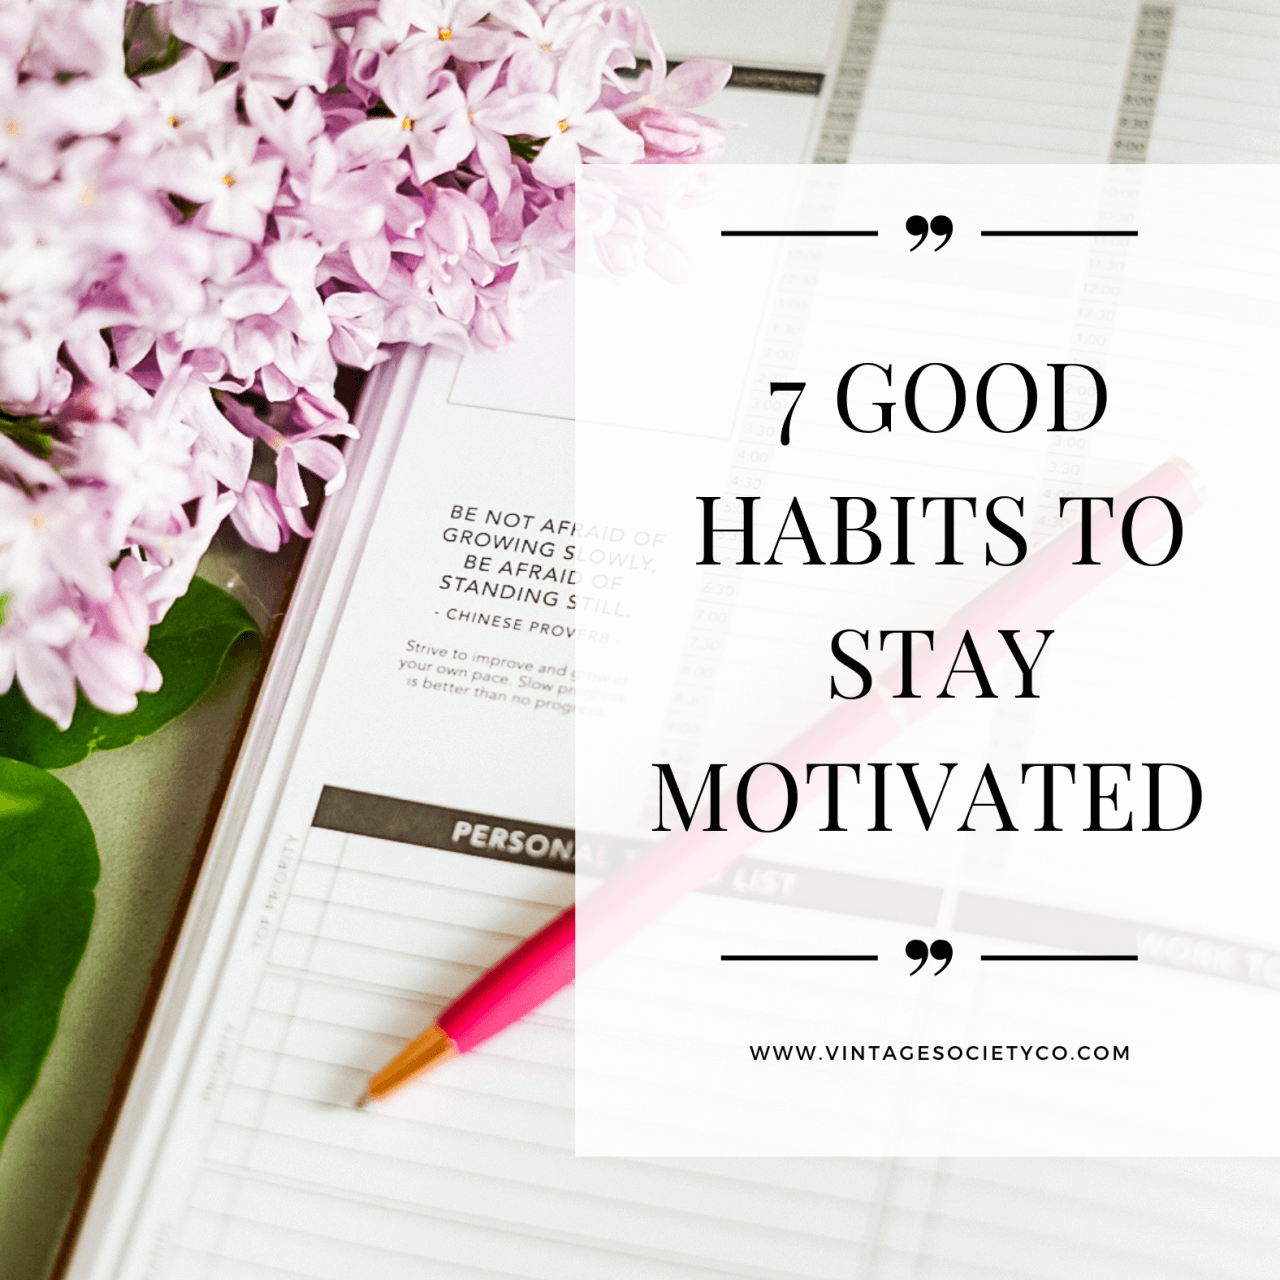 7 Good Habits to Stay Motivated